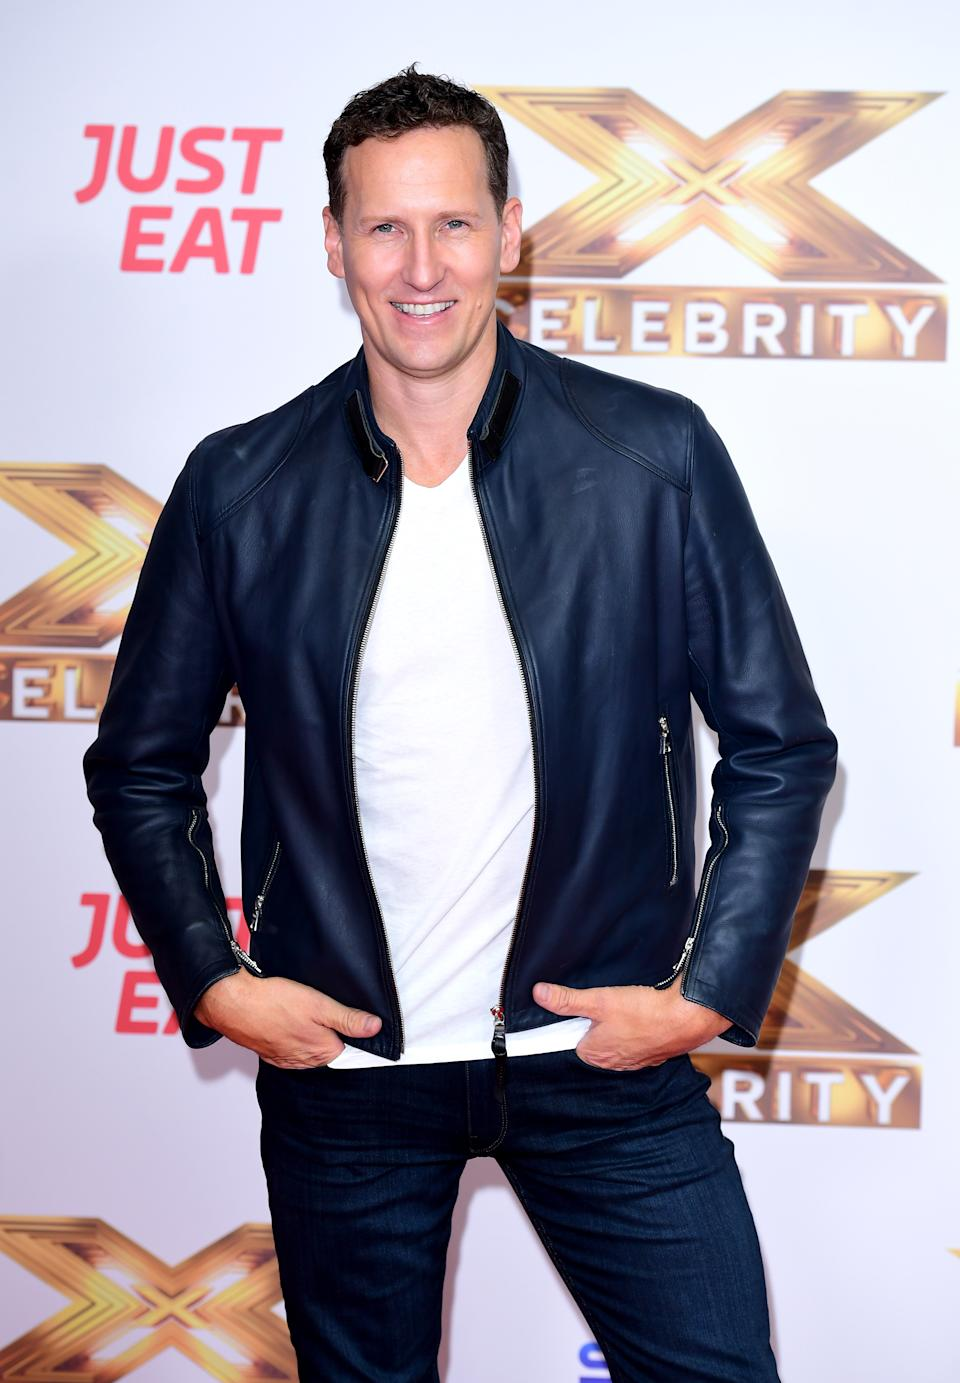 Brendan Cole attending the launch of The Factor: Celebrity, held at the Mayfair Hotel, London.